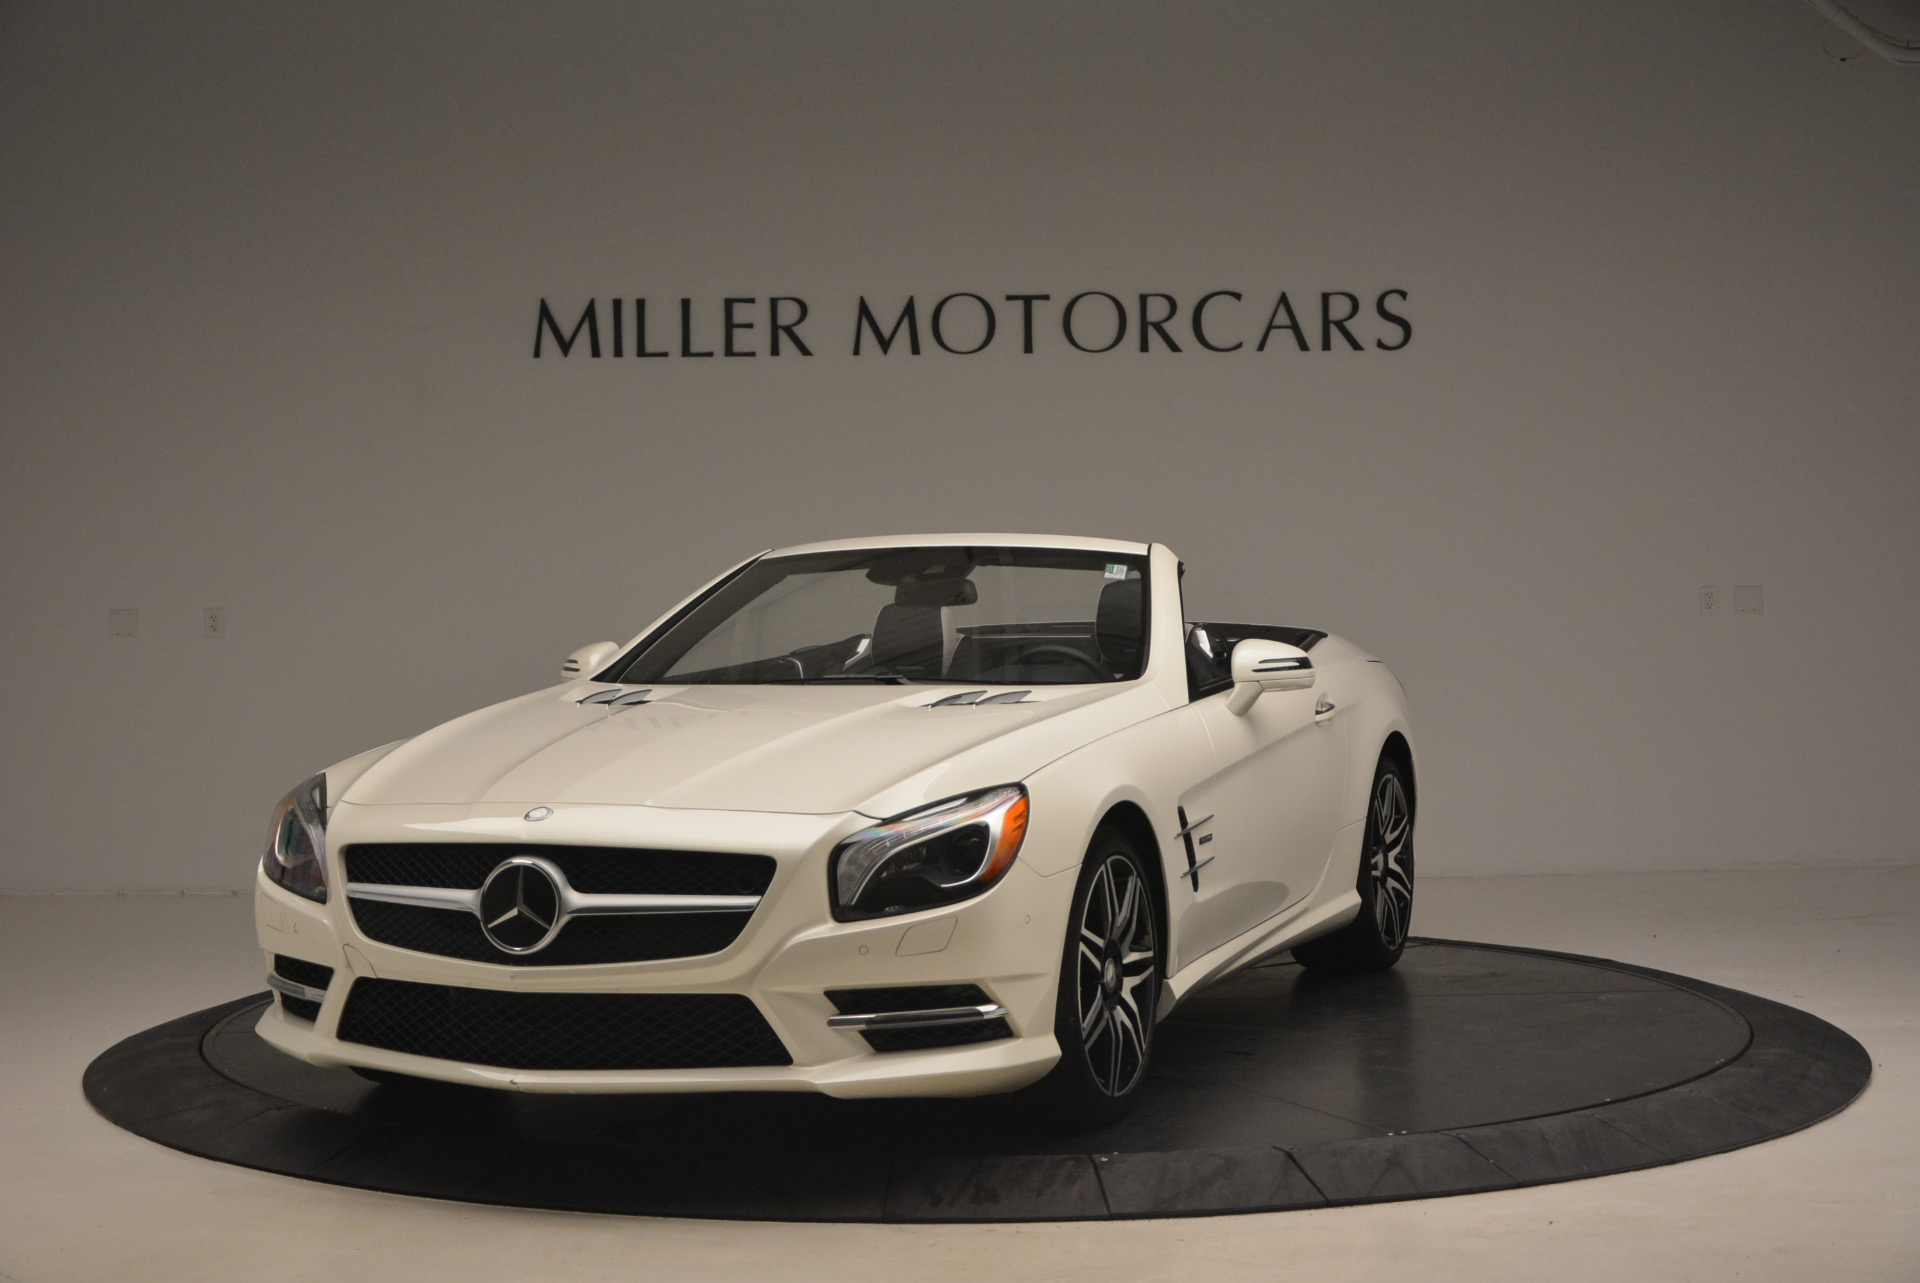 Used 2015 Mercedes Benz SL-Class SL 550 for sale Sold at Aston Martin of Greenwich in Greenwich CT 06830 1